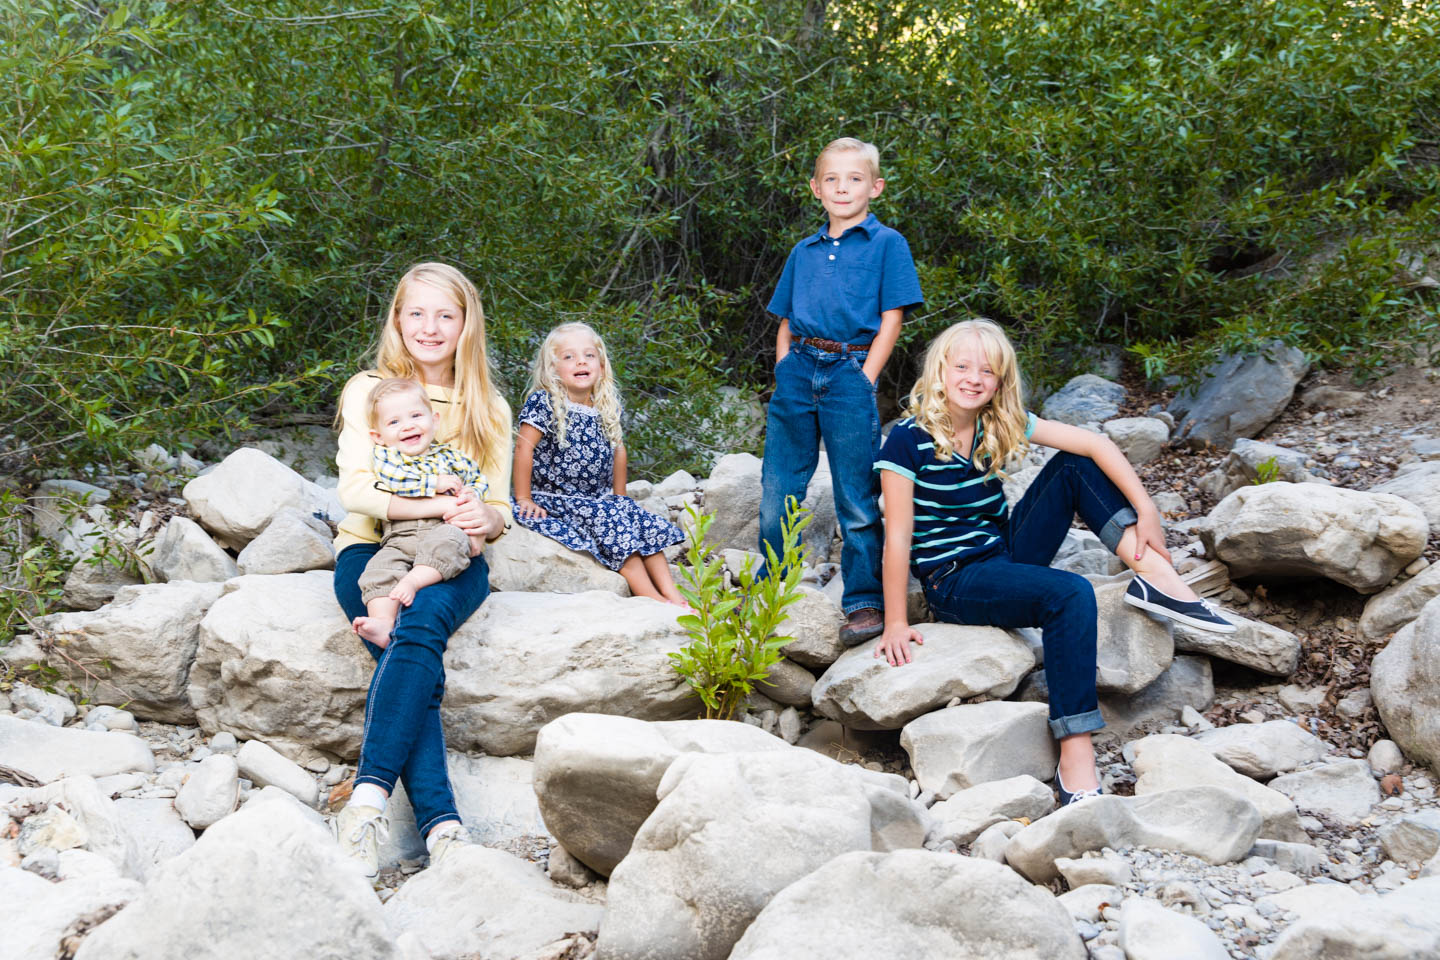 Group photo of the kids in a dried riverbed